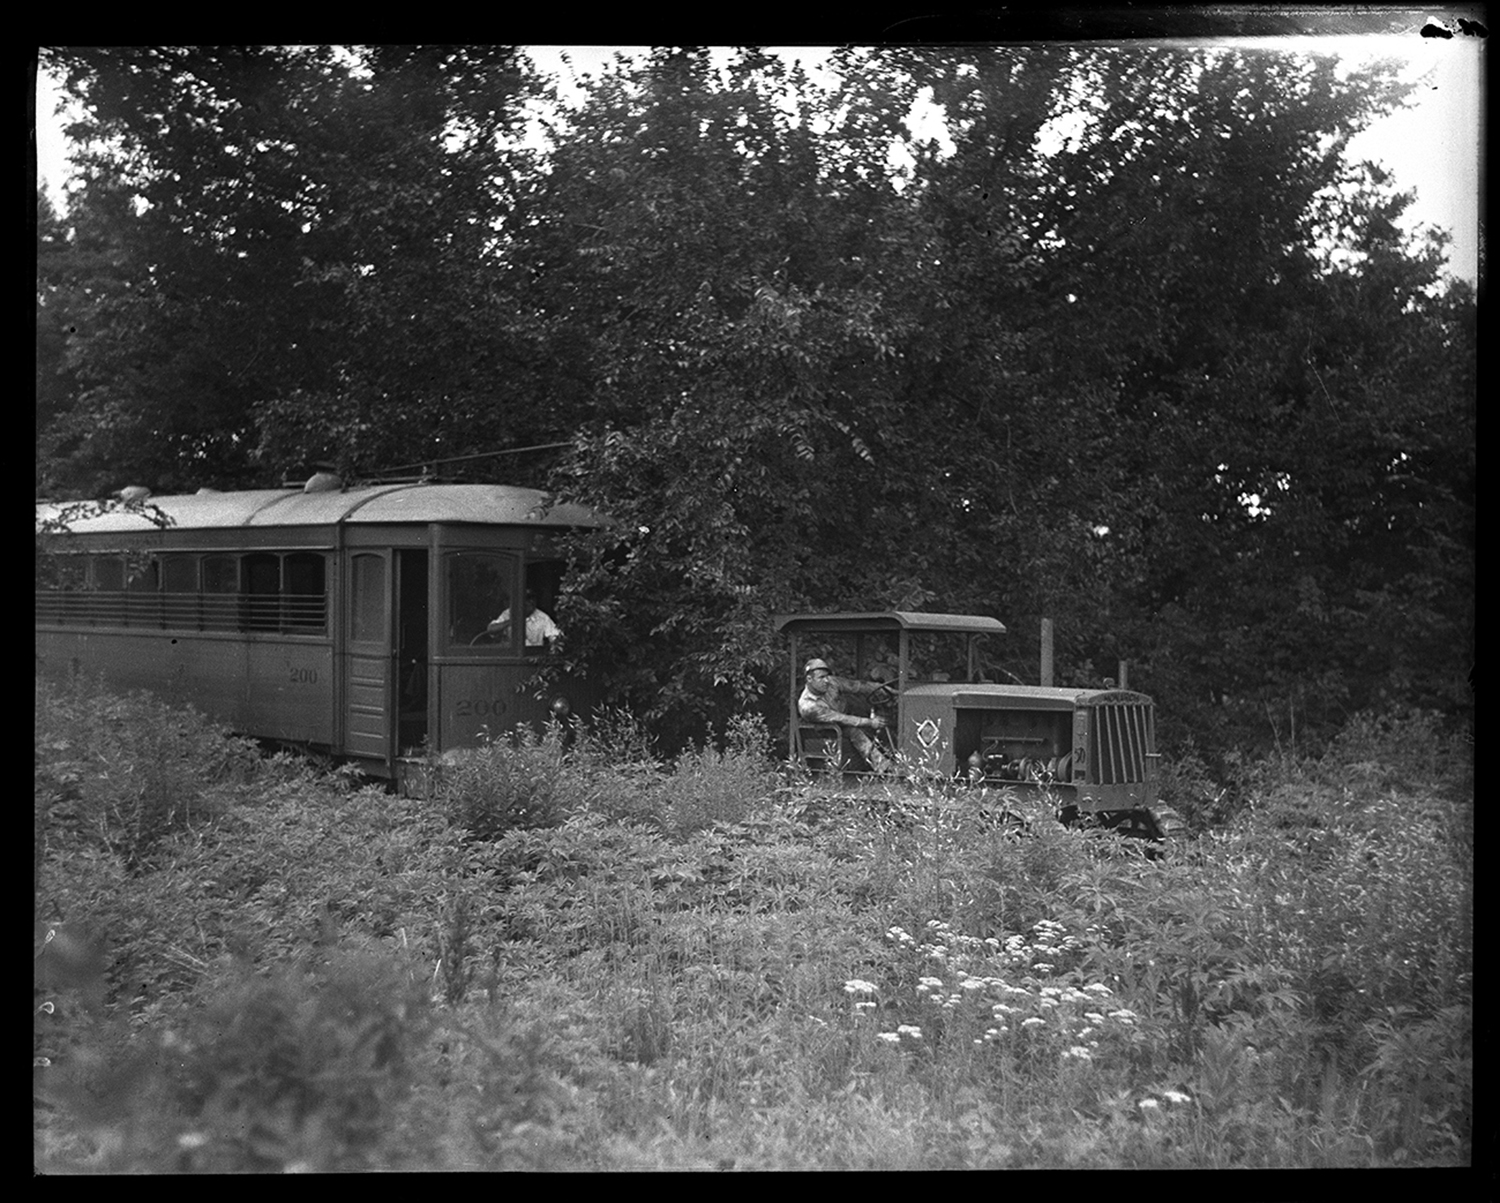 Streetcar No. 200 was dragged into retirement on July 2,1936 after ending its service on the 'zinc works' branch of the Illinois Power Company's citywide trolley system. The zinc line serviced the northeast section of Springfield and the car was towed over a stretch of unused and overgrown track that no longer had the overhead power cable needed to provide power. Its destination was the trolley car barn on Eighth Street at Monroe (now Saputo's Restaurant). File/The State Journal-Register